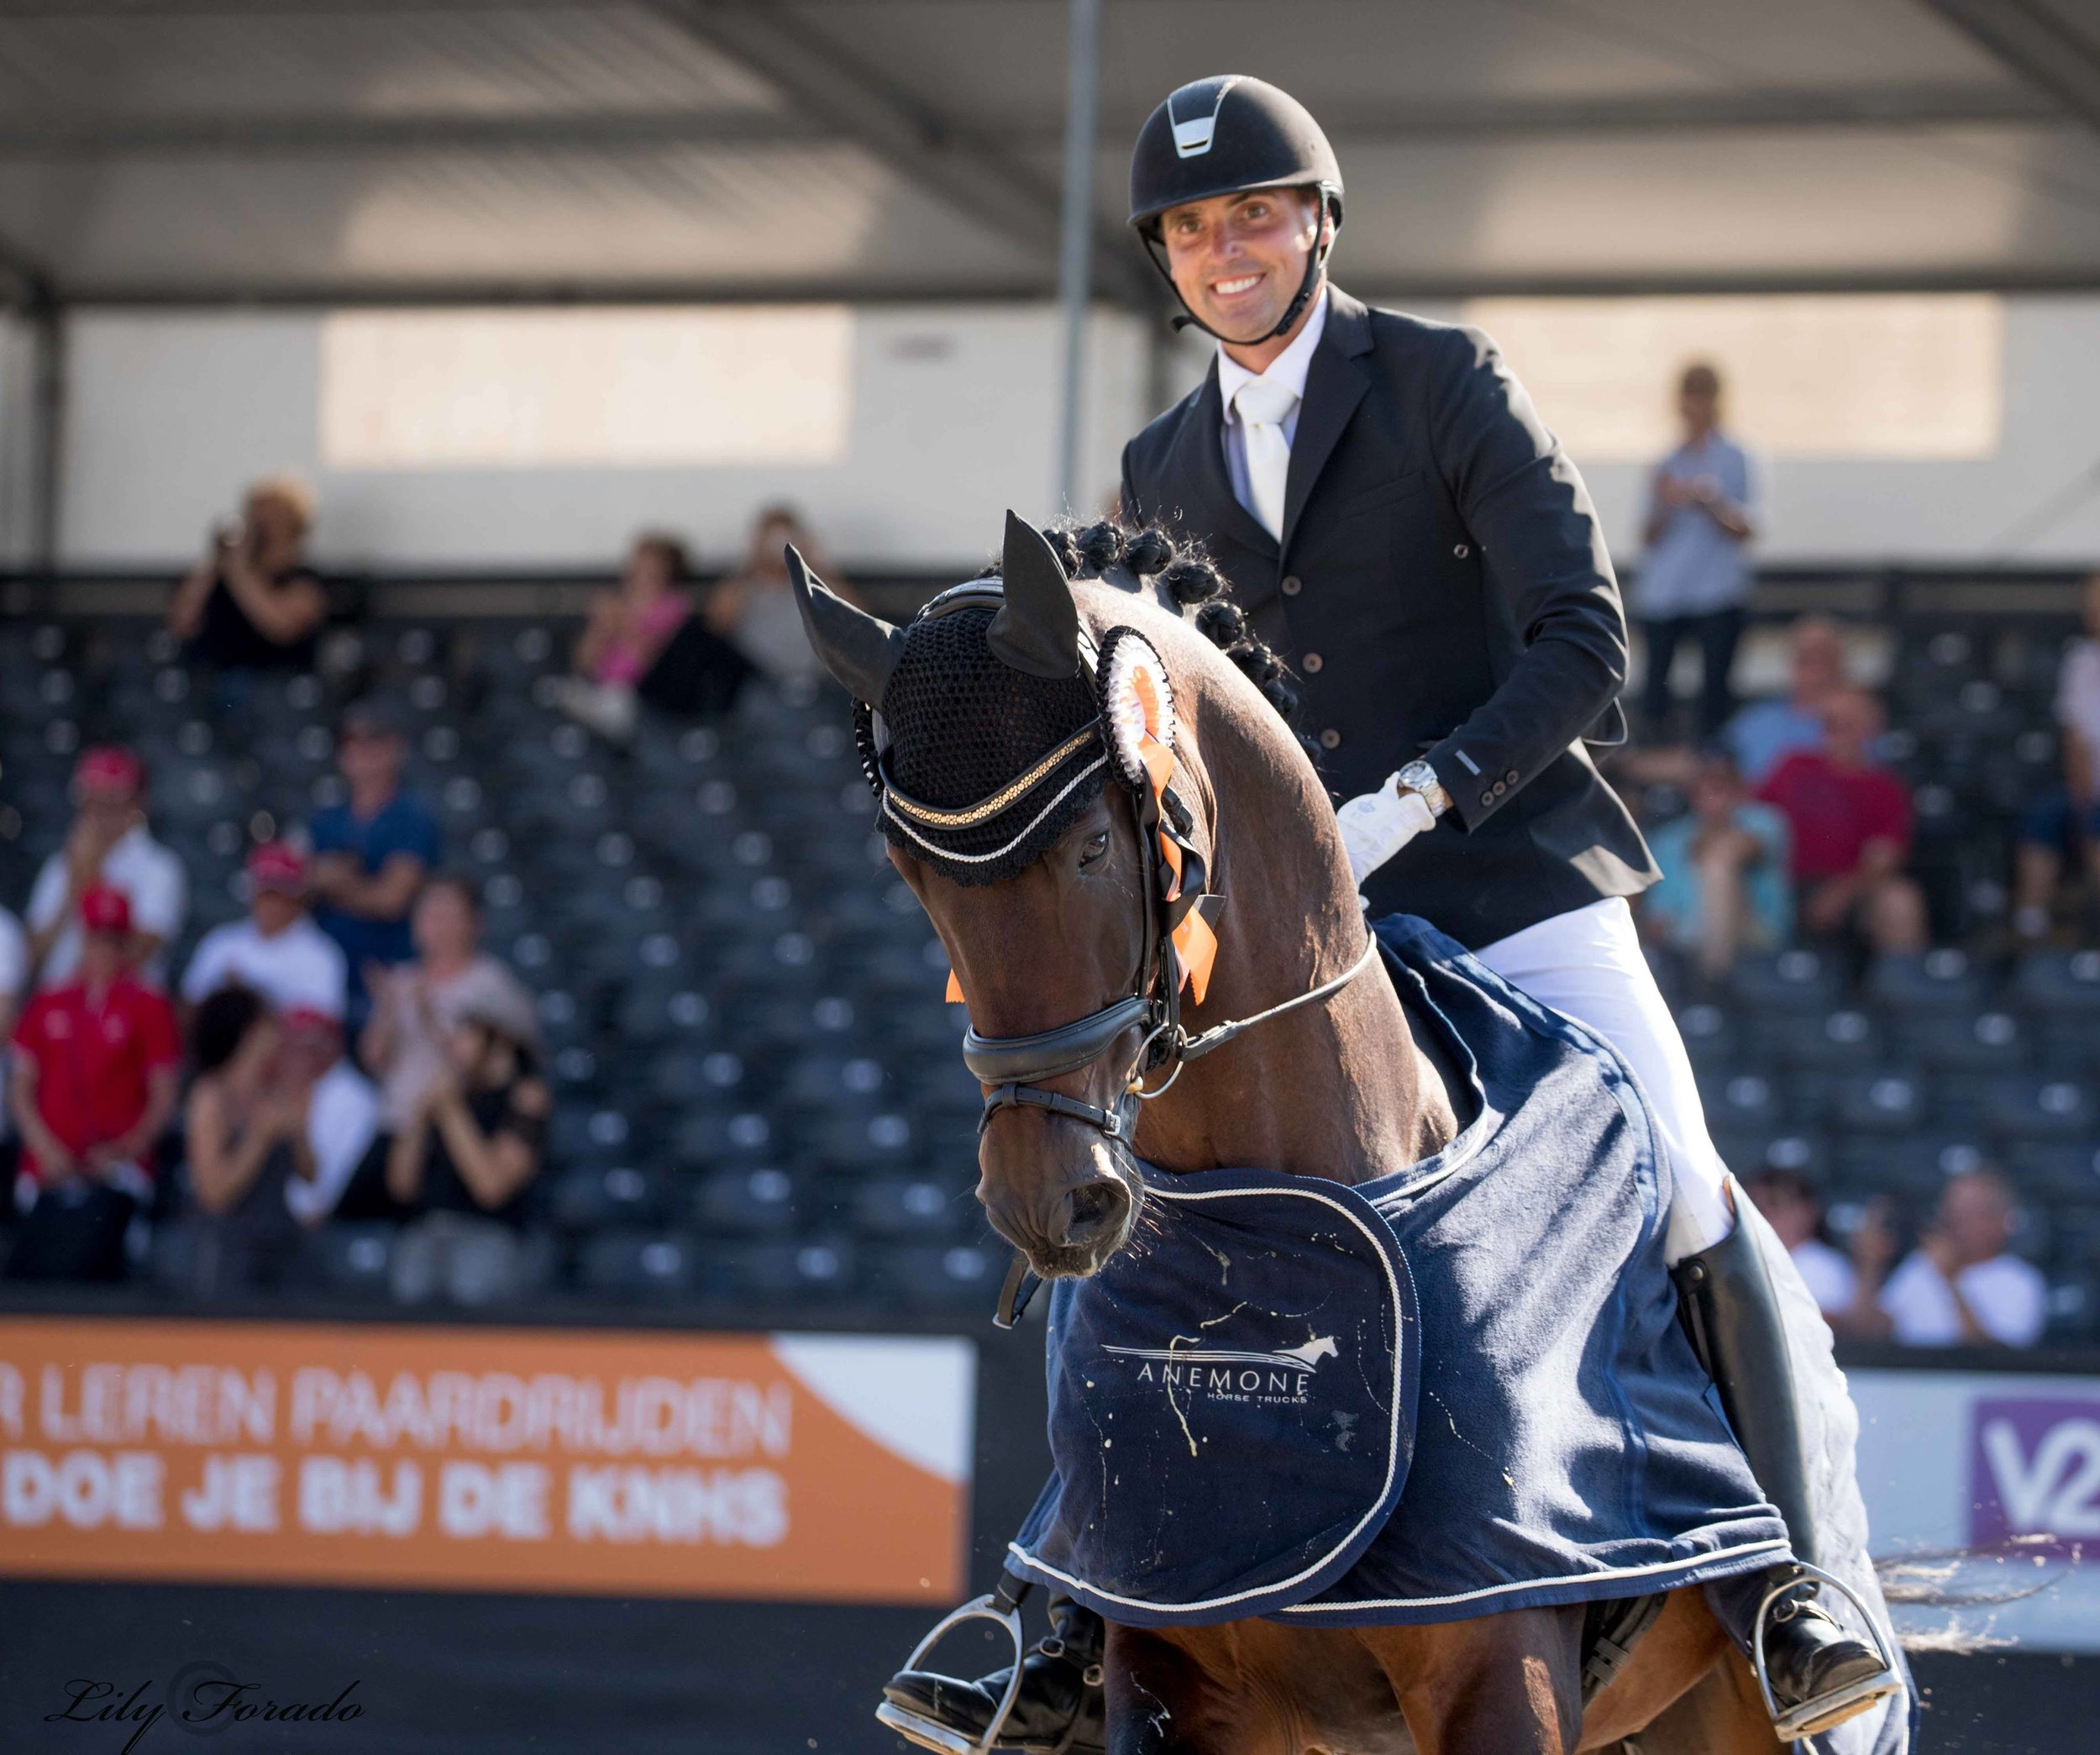 World Champion 5 year old horses Revolution and Andreas Helgstrand 2018 - photocredit: Lily Forado